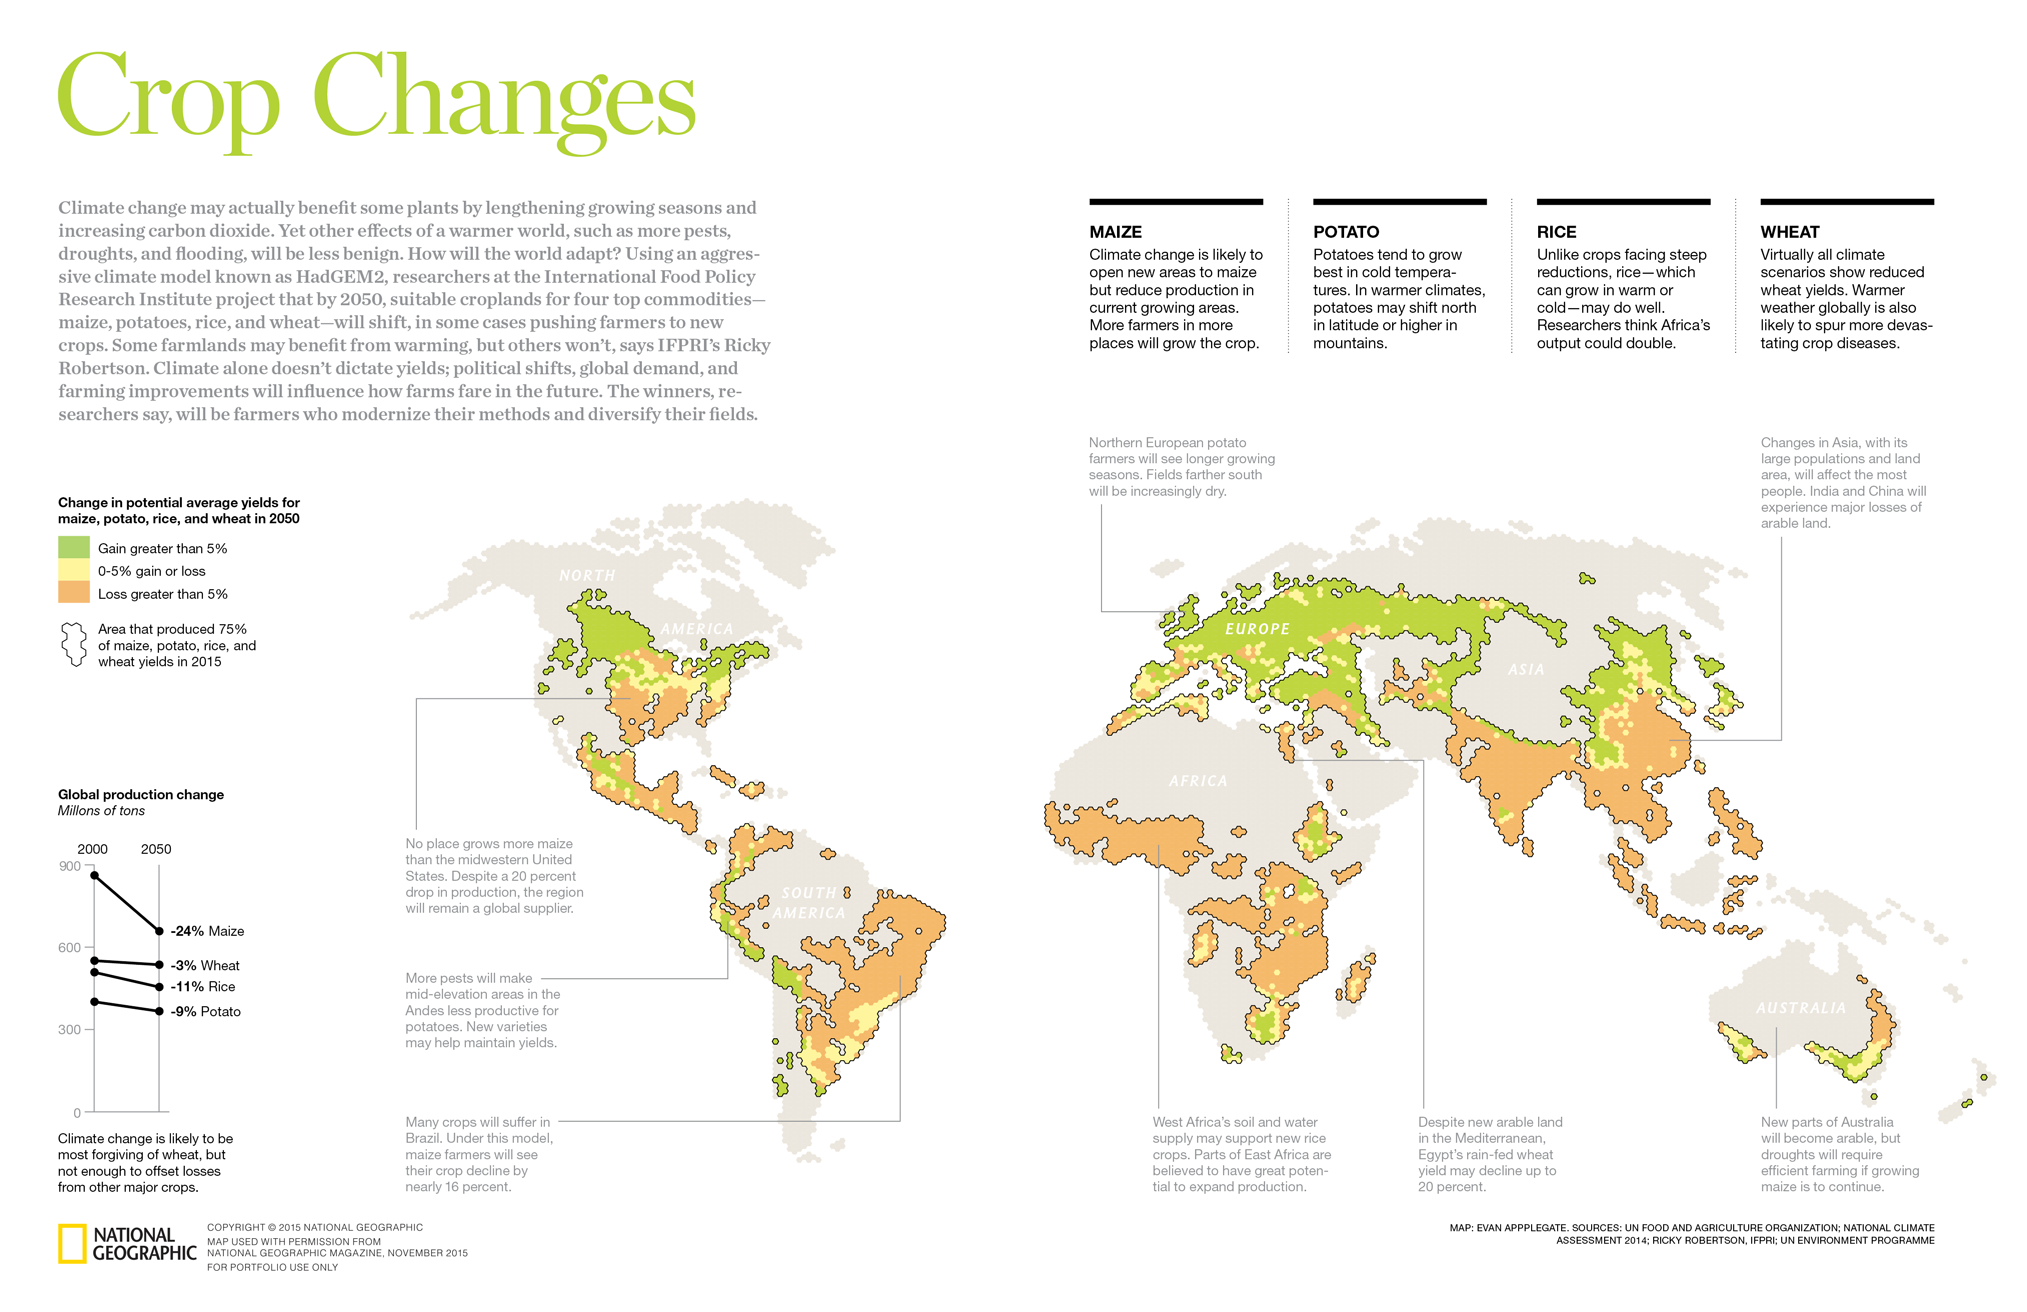 National Geographic map and data visualization – Global Crop Changes